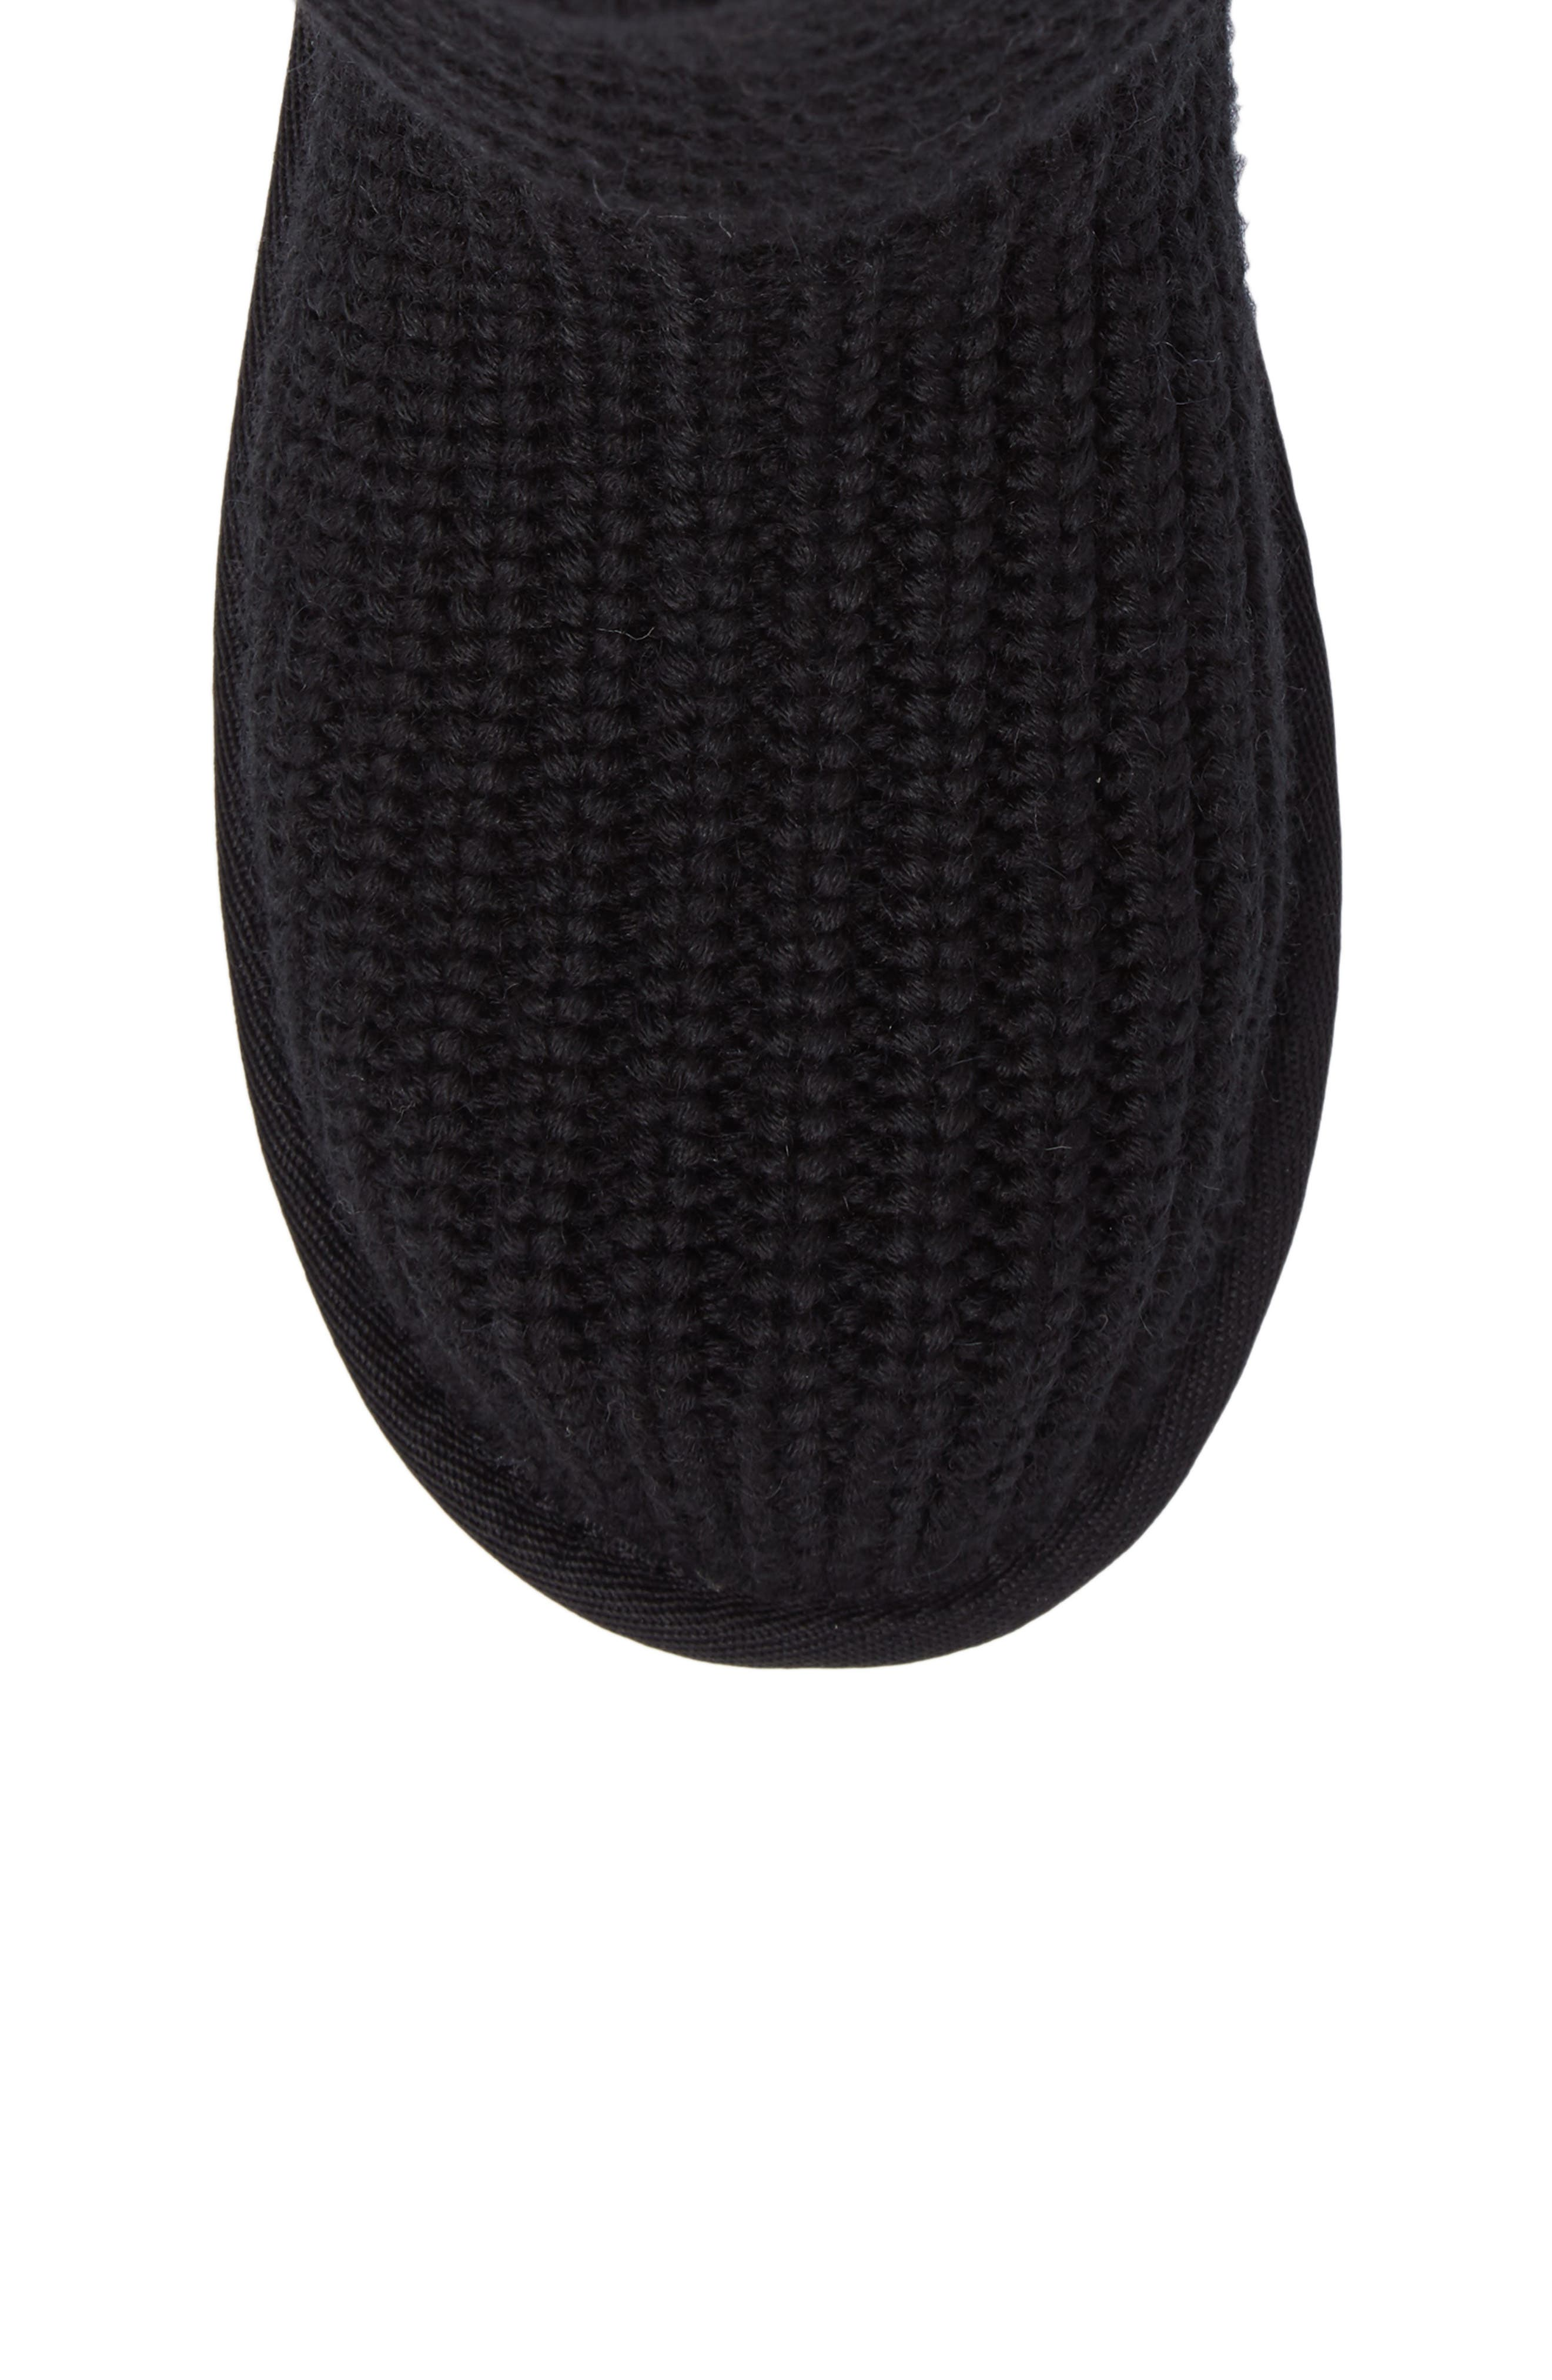 Cardy II Cableknit Boot,                             Alternate thumbnail 5, color,                             BLACK